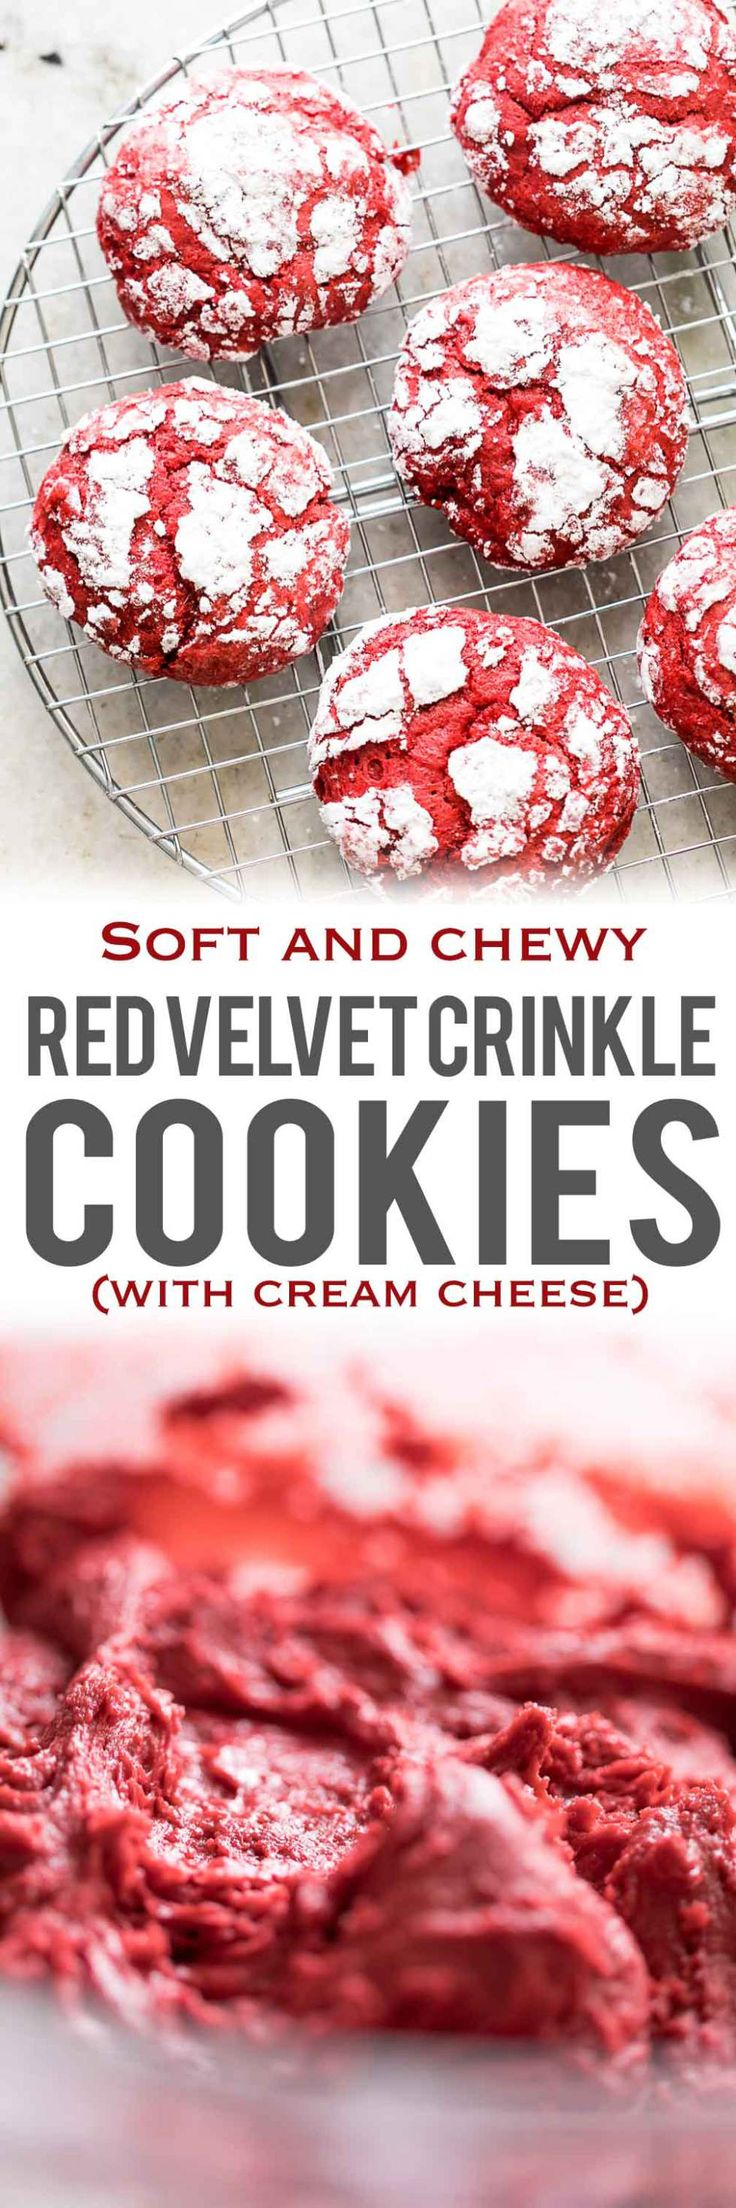 Red Velvet Crinkle Cookies are soft, chewy cookies that are made from scratch with cream cheese and will fit right in with your holiday plans. Use them for cookie swaps, gifting or just to pass around the Christmas table! My Food Story #cookies #cookierecipe #redvelvetcookies